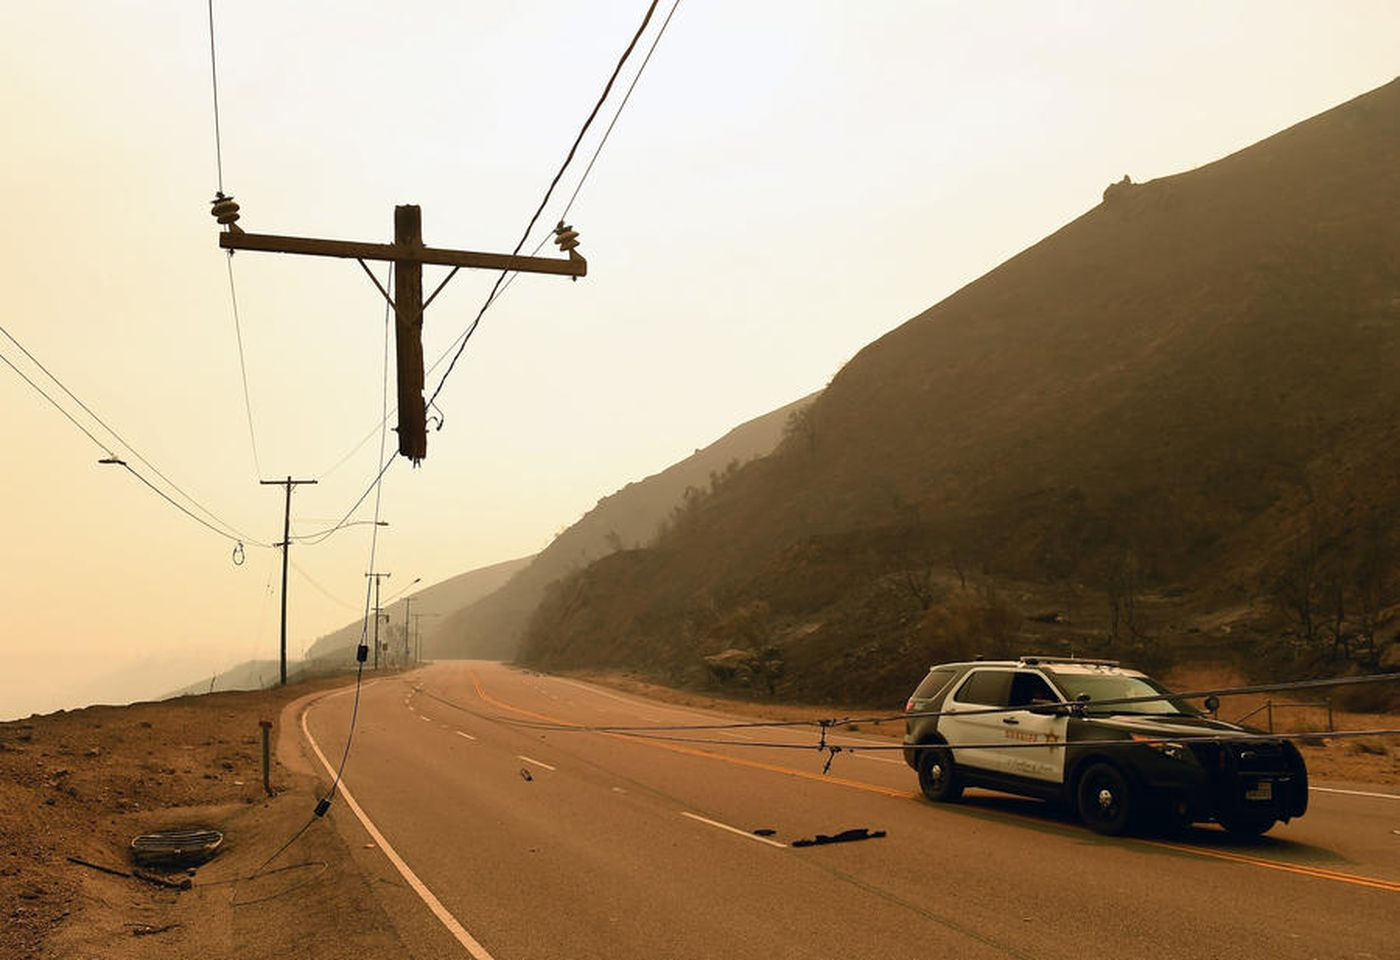 Only the top few feet of a utility pole survived the Woolsey Fire as it roared over Kanan Road in Malibu. (Credit: Wally Skalij/Los Angeles Times)